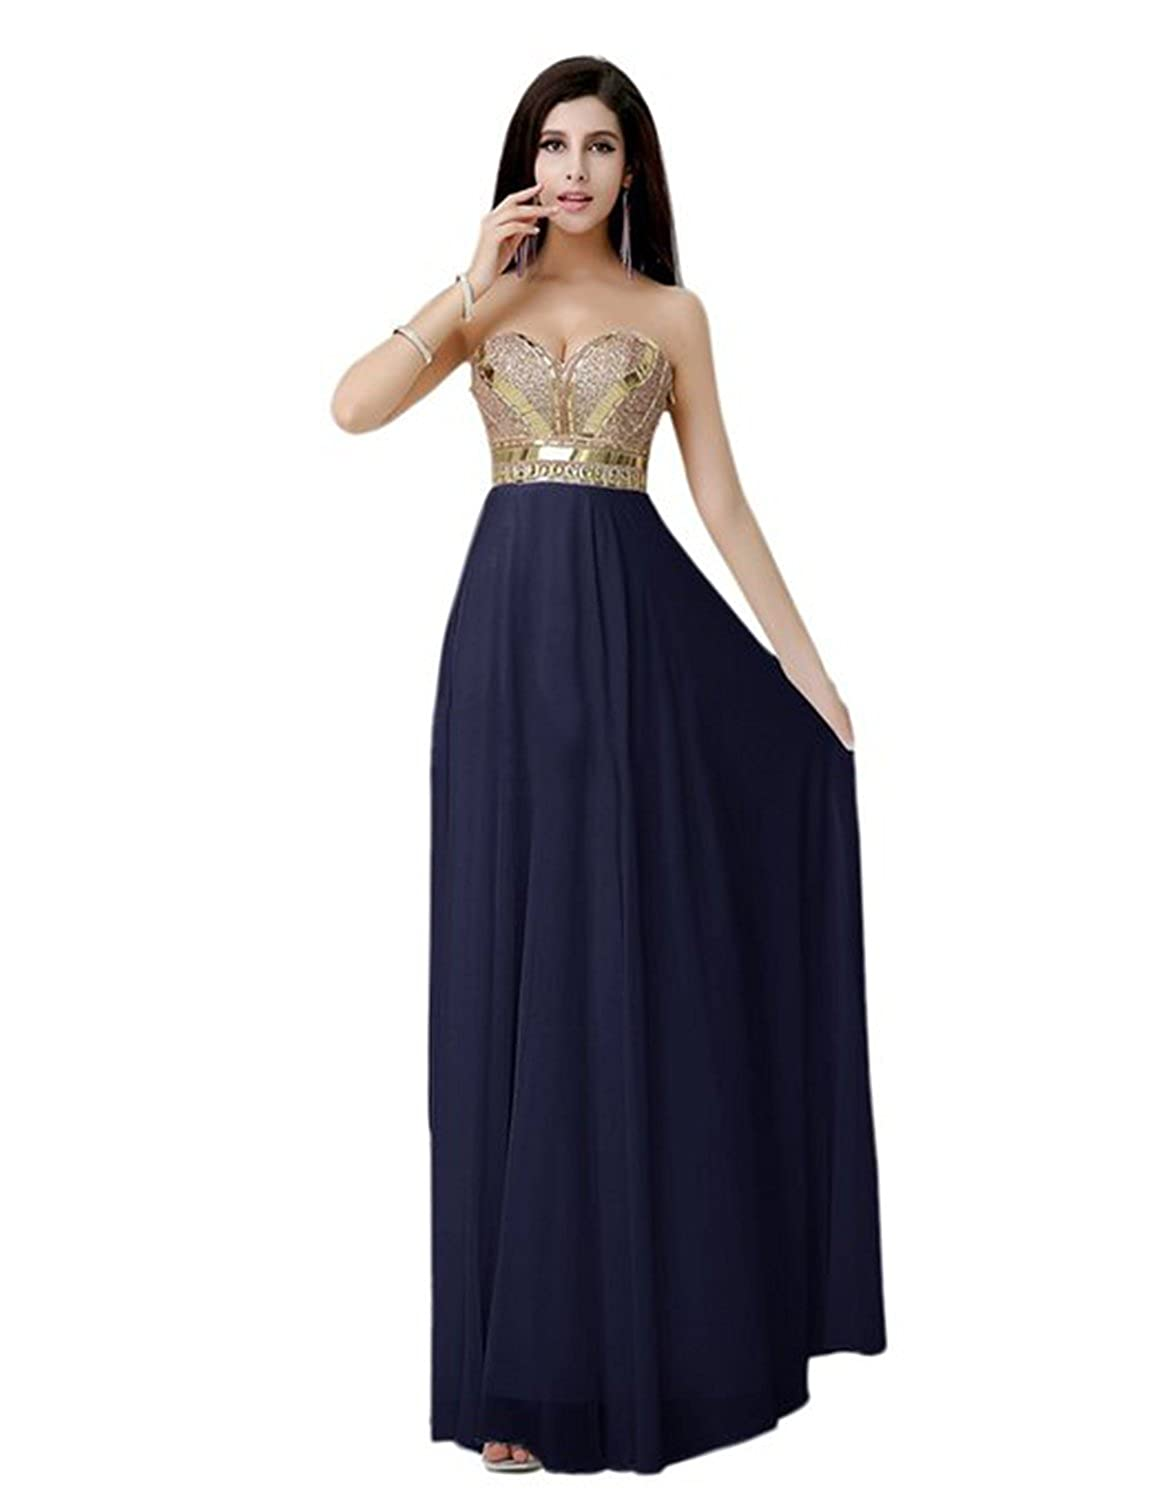 Sarahbridal Women's Long Metallic Prom Dresses Chiffon Formal Evening Party Dress with Beaded SAJ025